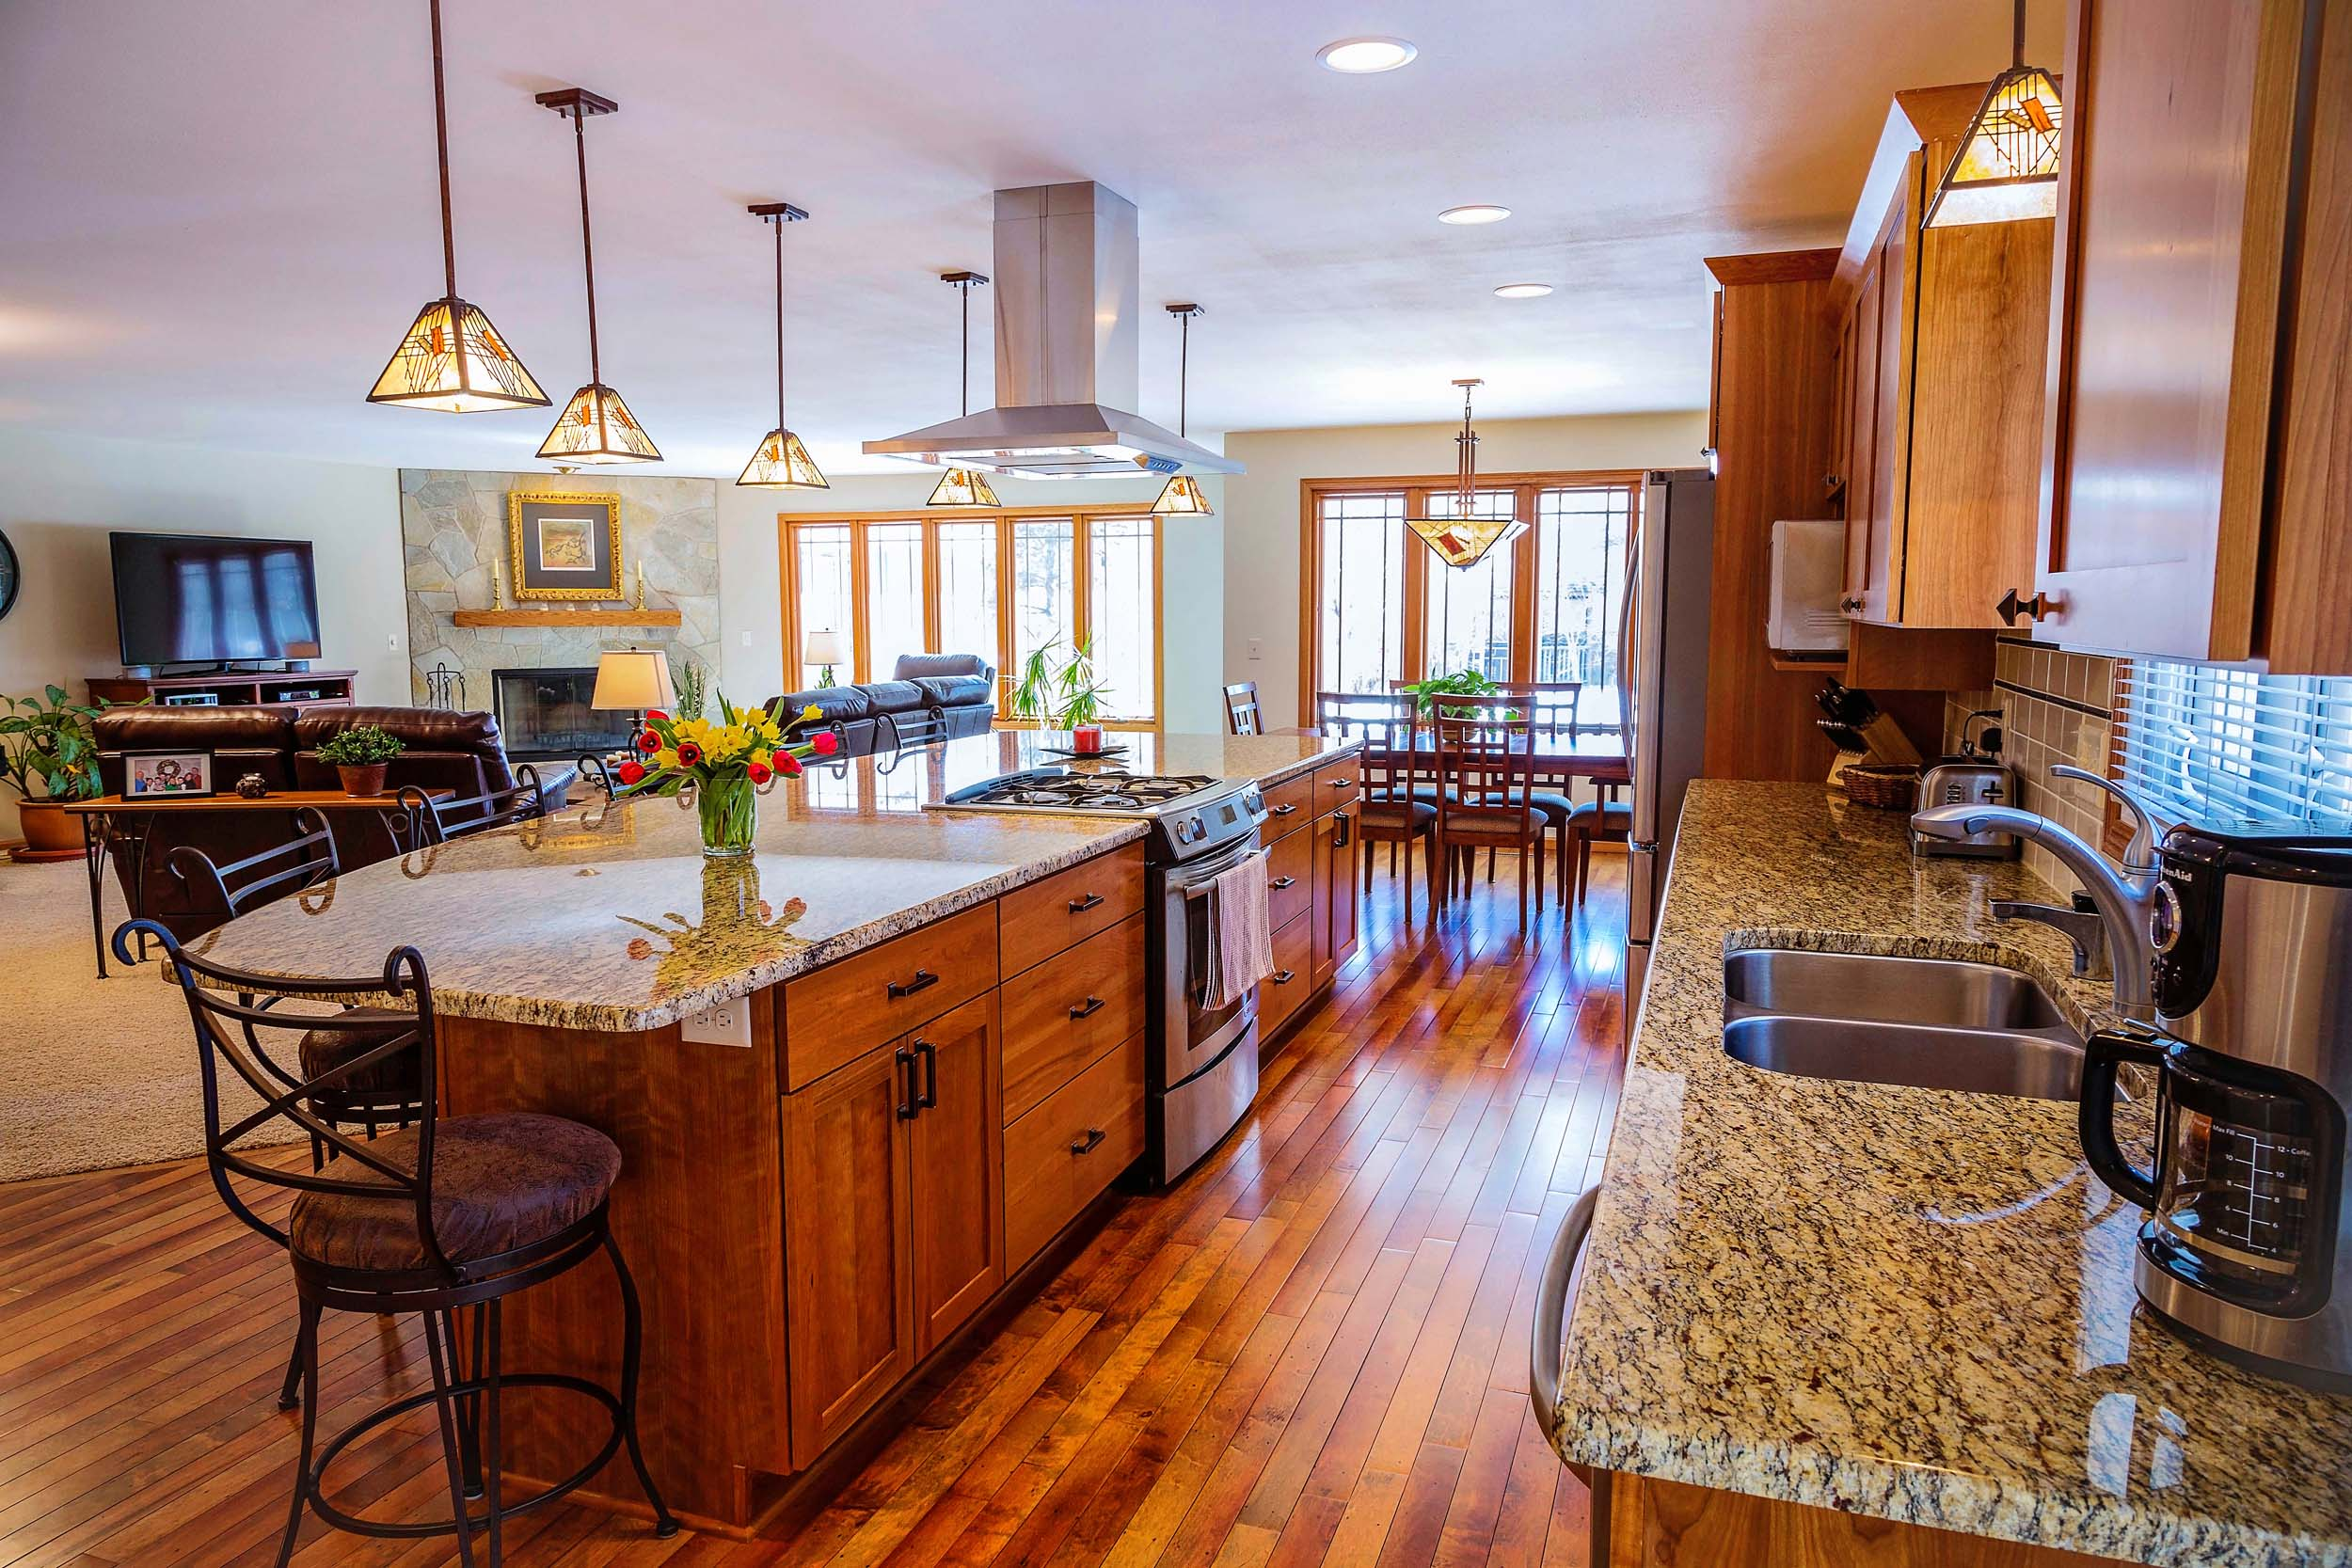 A Grand Floor Plan for Entertaining and Parties - The spaces visible in this photo were formerly divided into 4 different rooms. Converted to a Great Room open floor plan, the island now seats all the grandchildren, and handles the parties that the clients like to host.